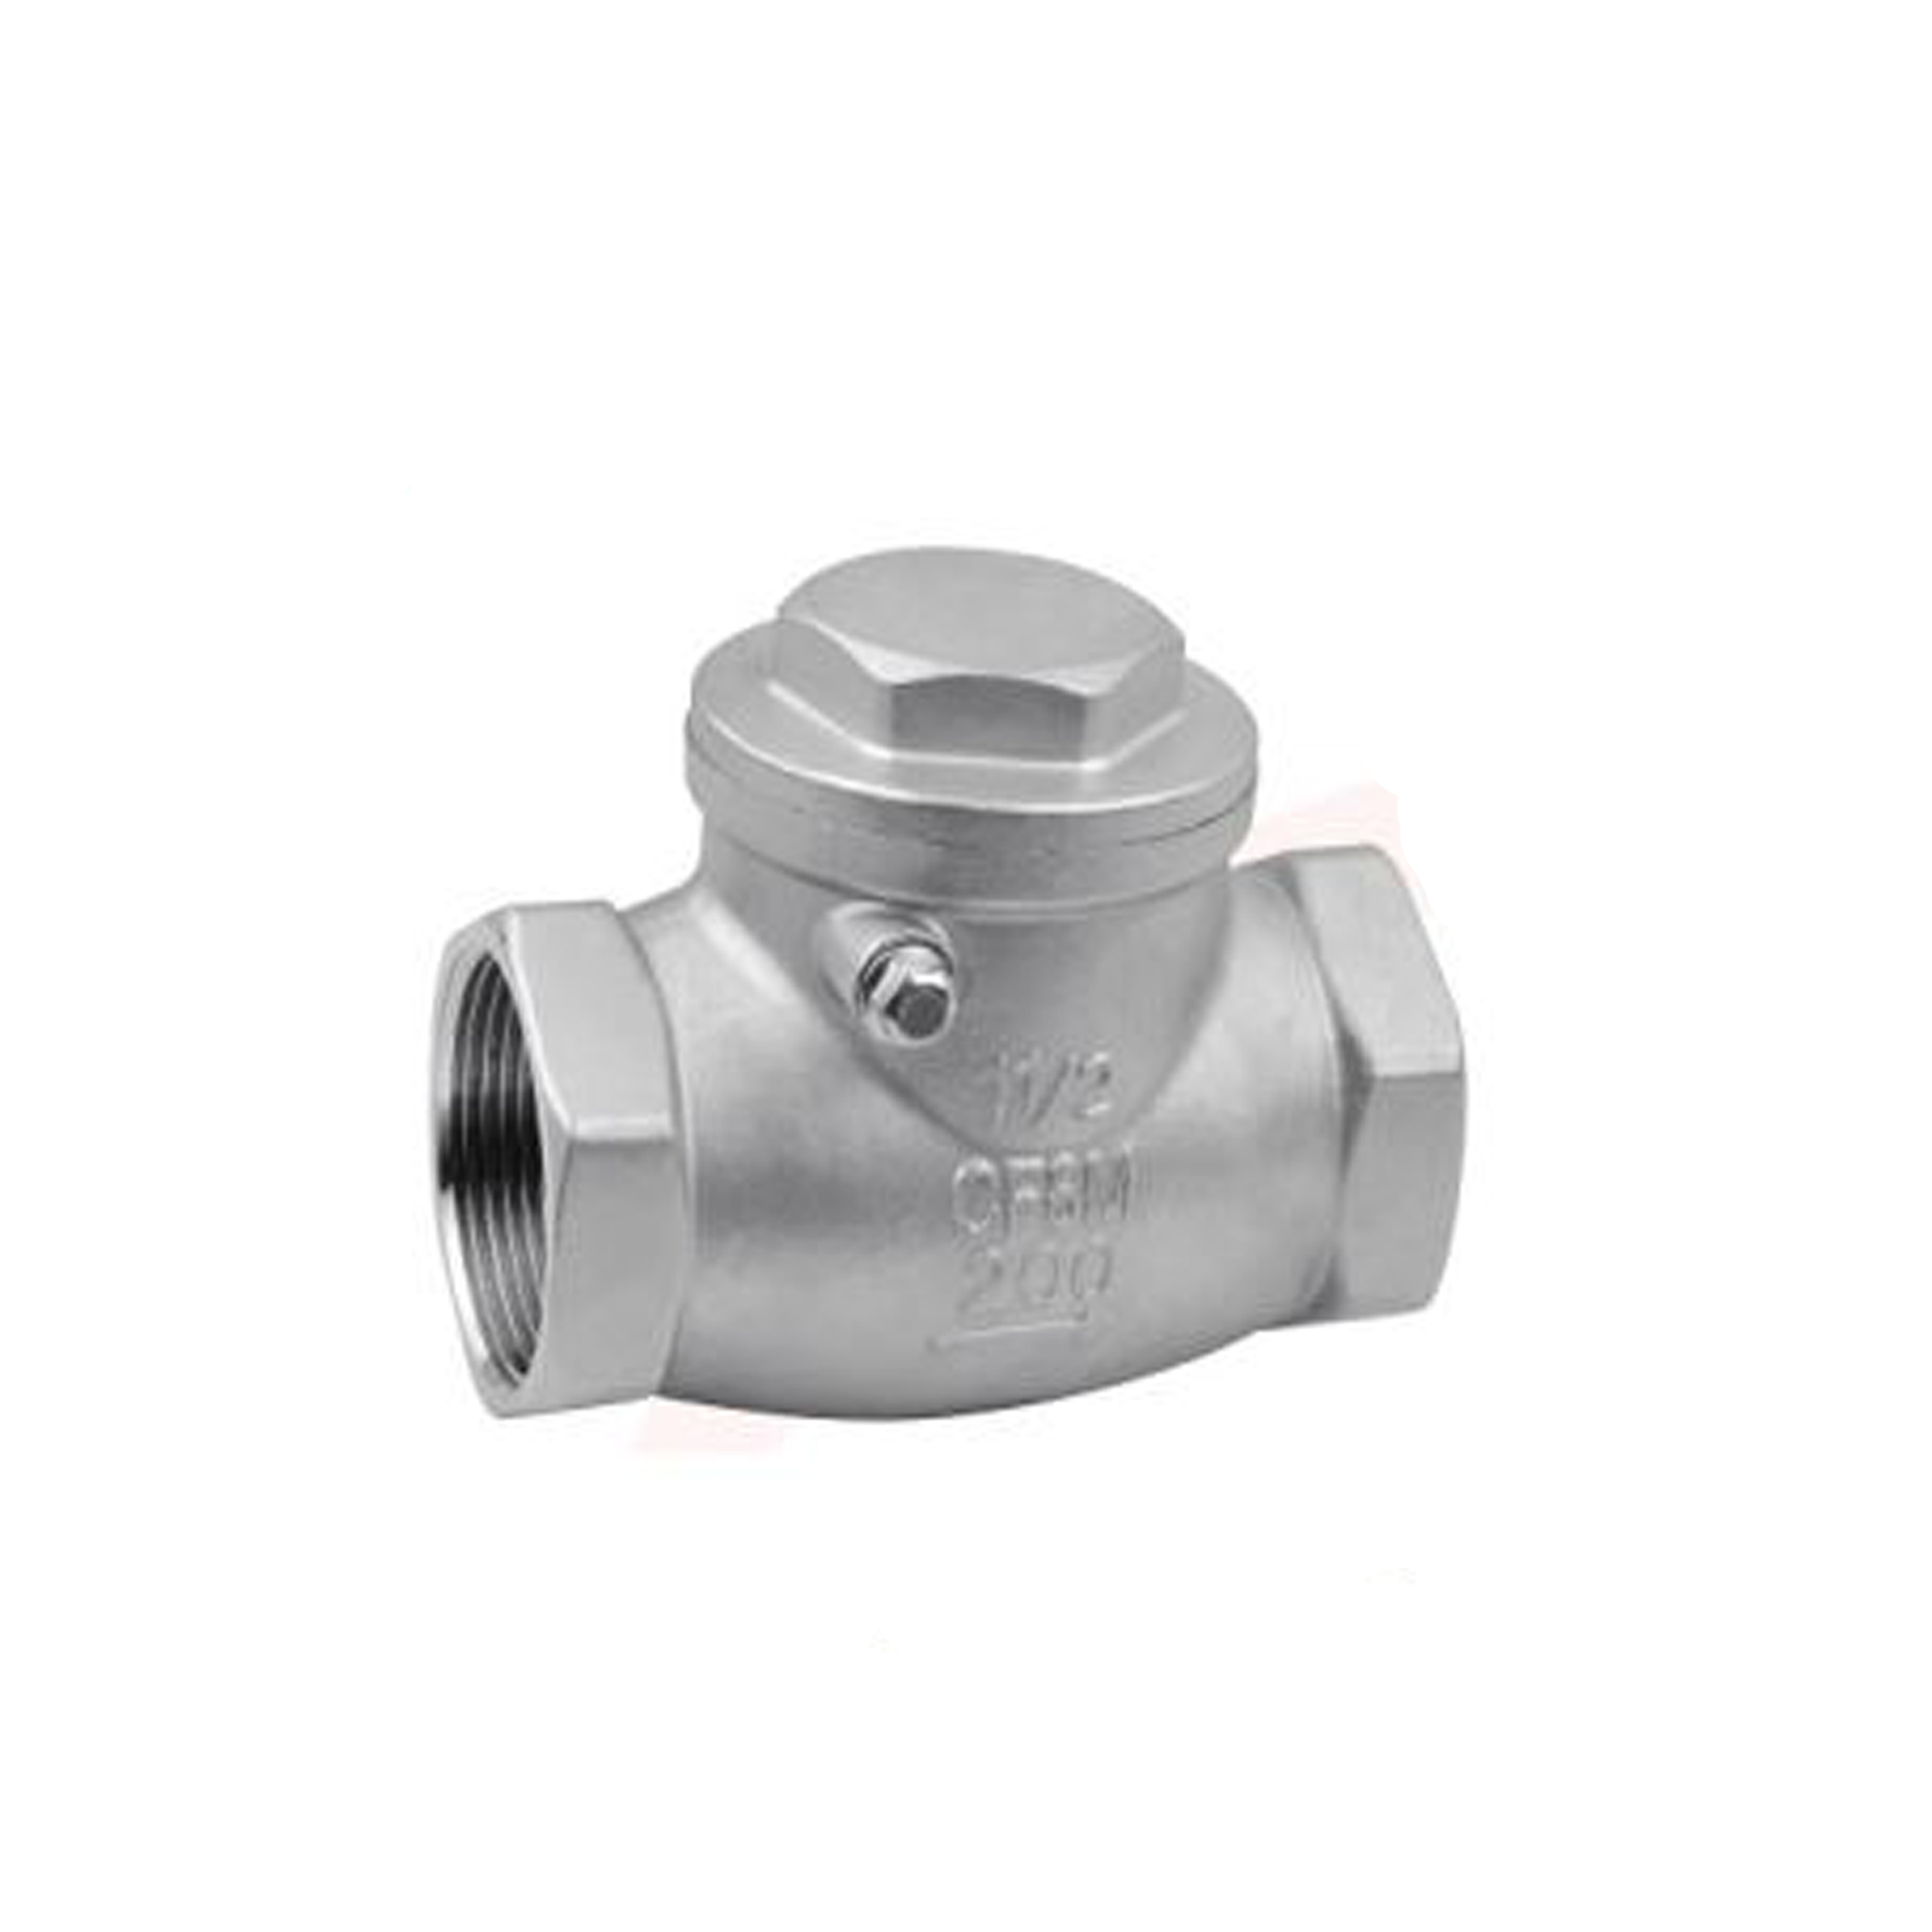 Stainless swing check valve 316